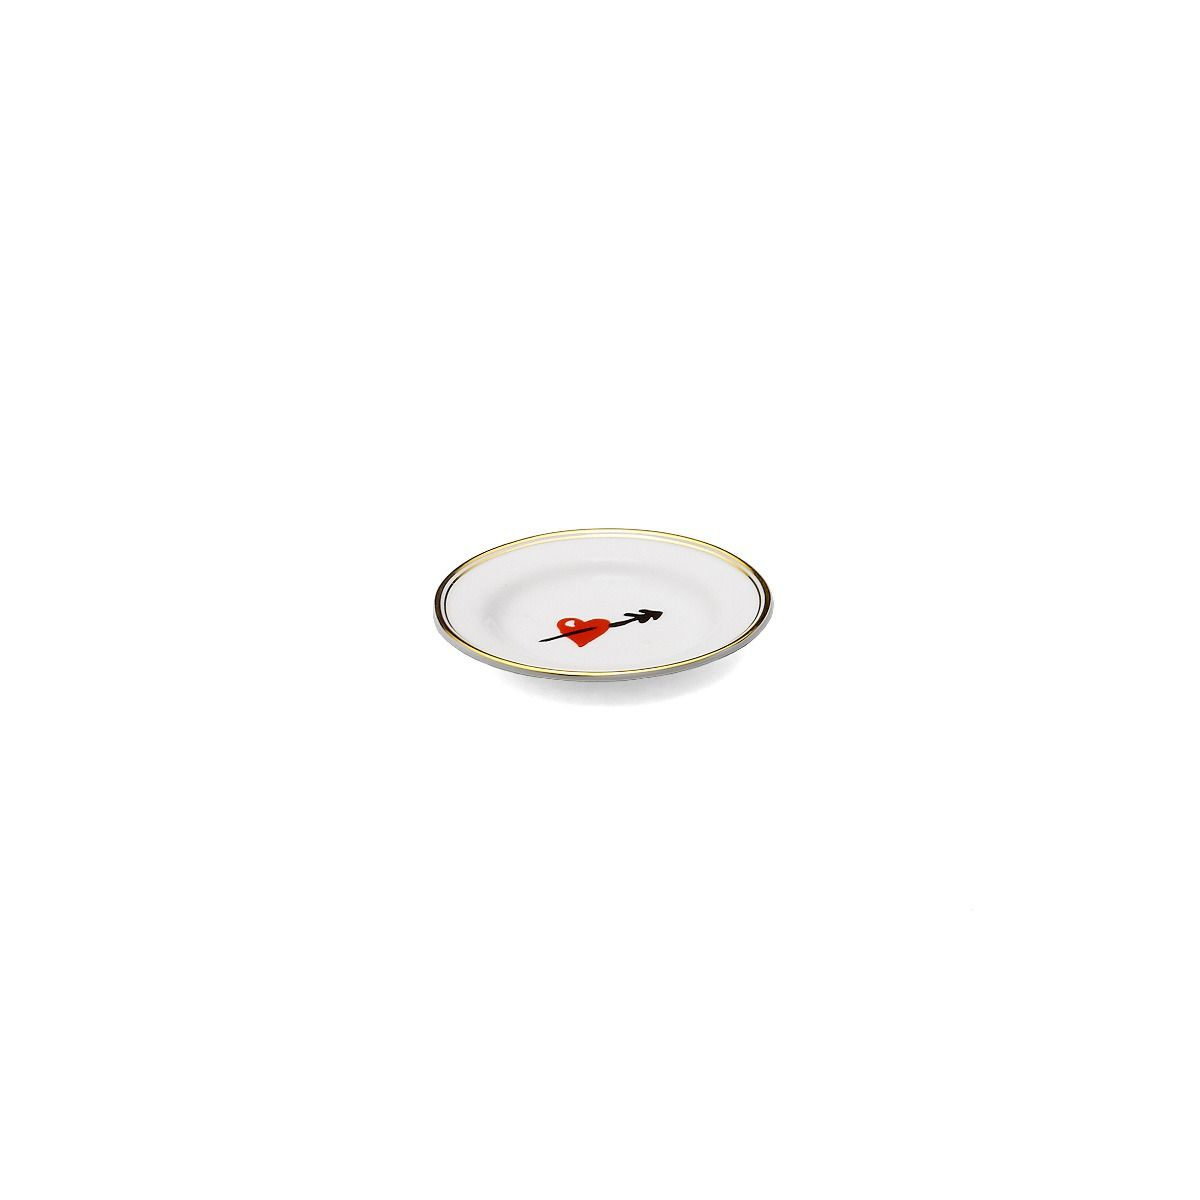 Plato Porcelana SMALL HEART. 10 cm